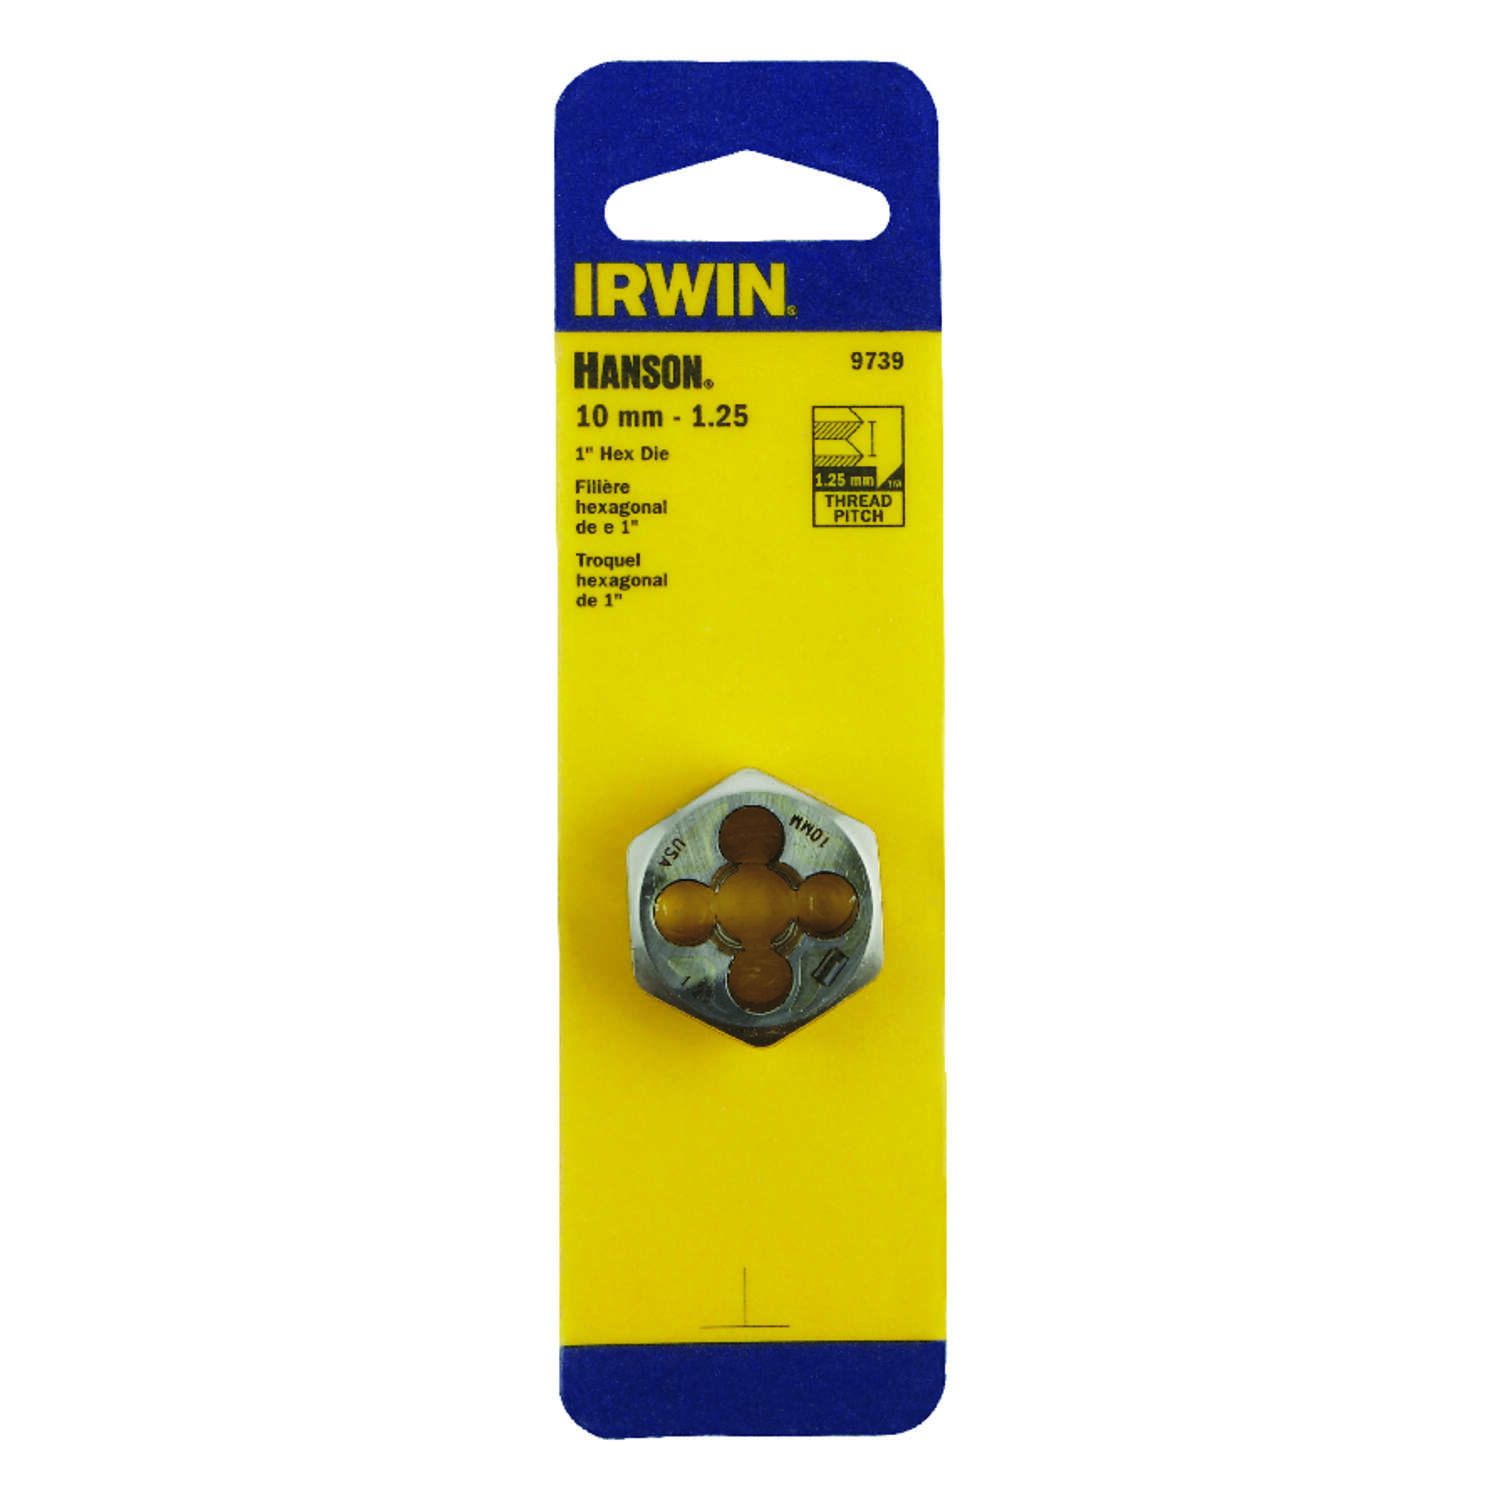 Irwin  Hanson  High Carbon Steel  Metric  Hexagon Die  10mm-1.25  1 pc.